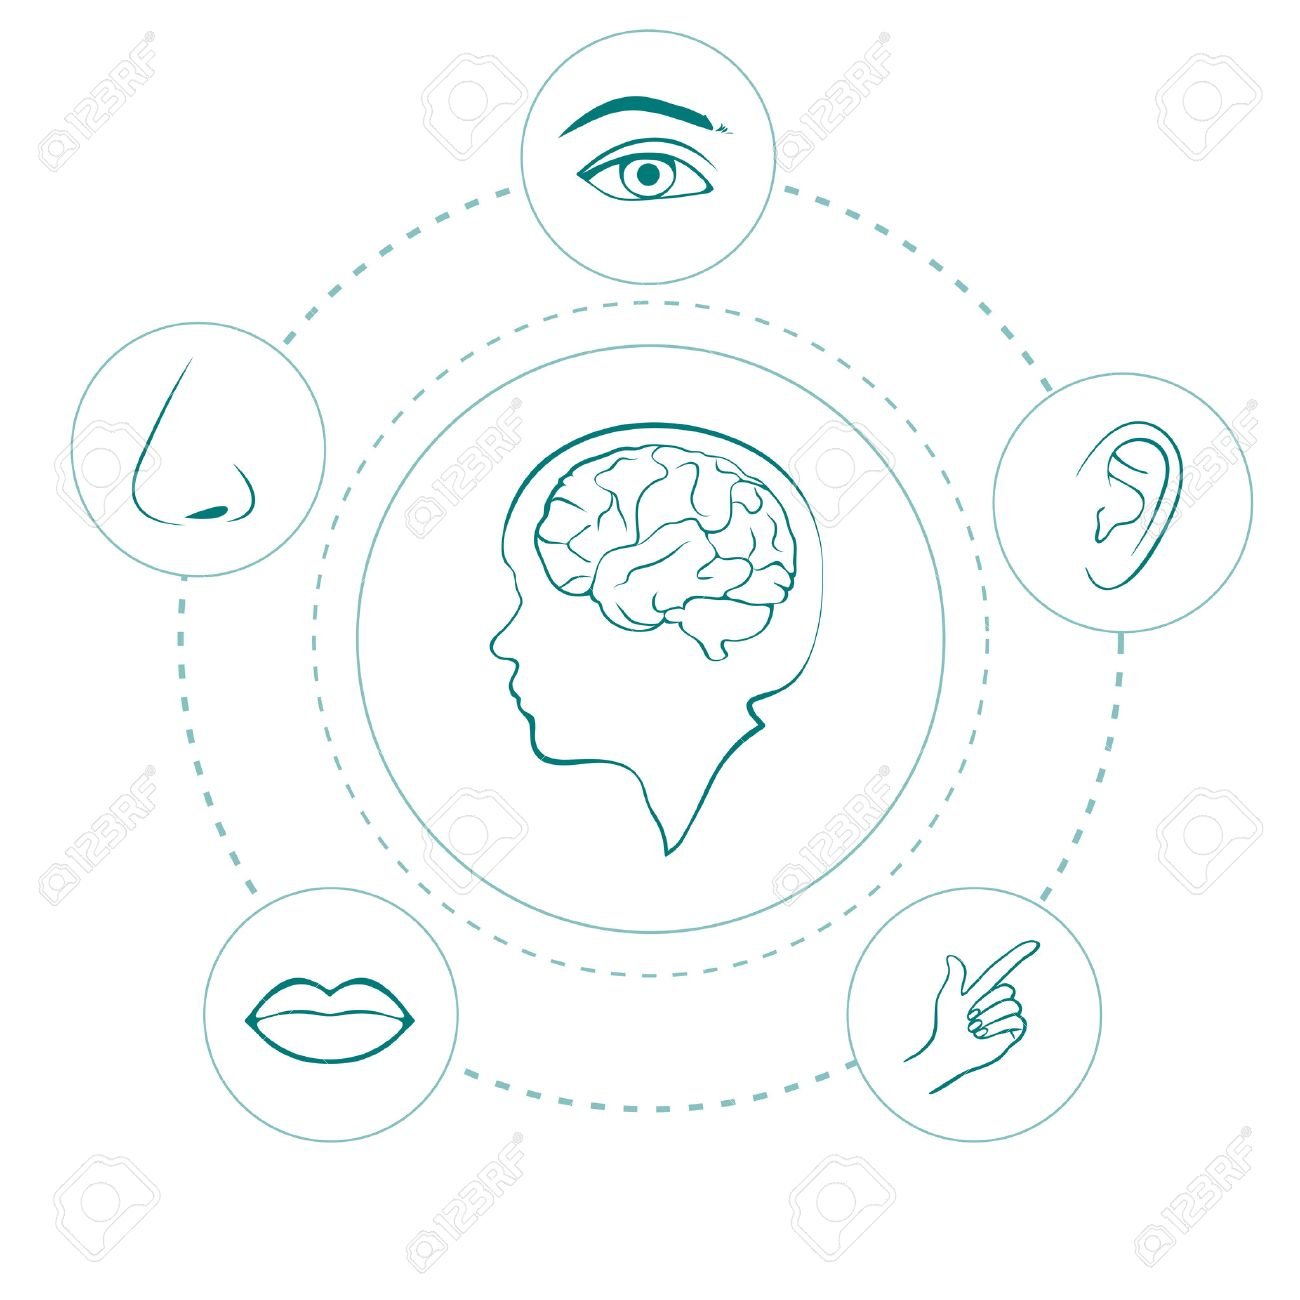 five senses diagram volvo wiring fh vector icons human nose ear eye and mouth illustration